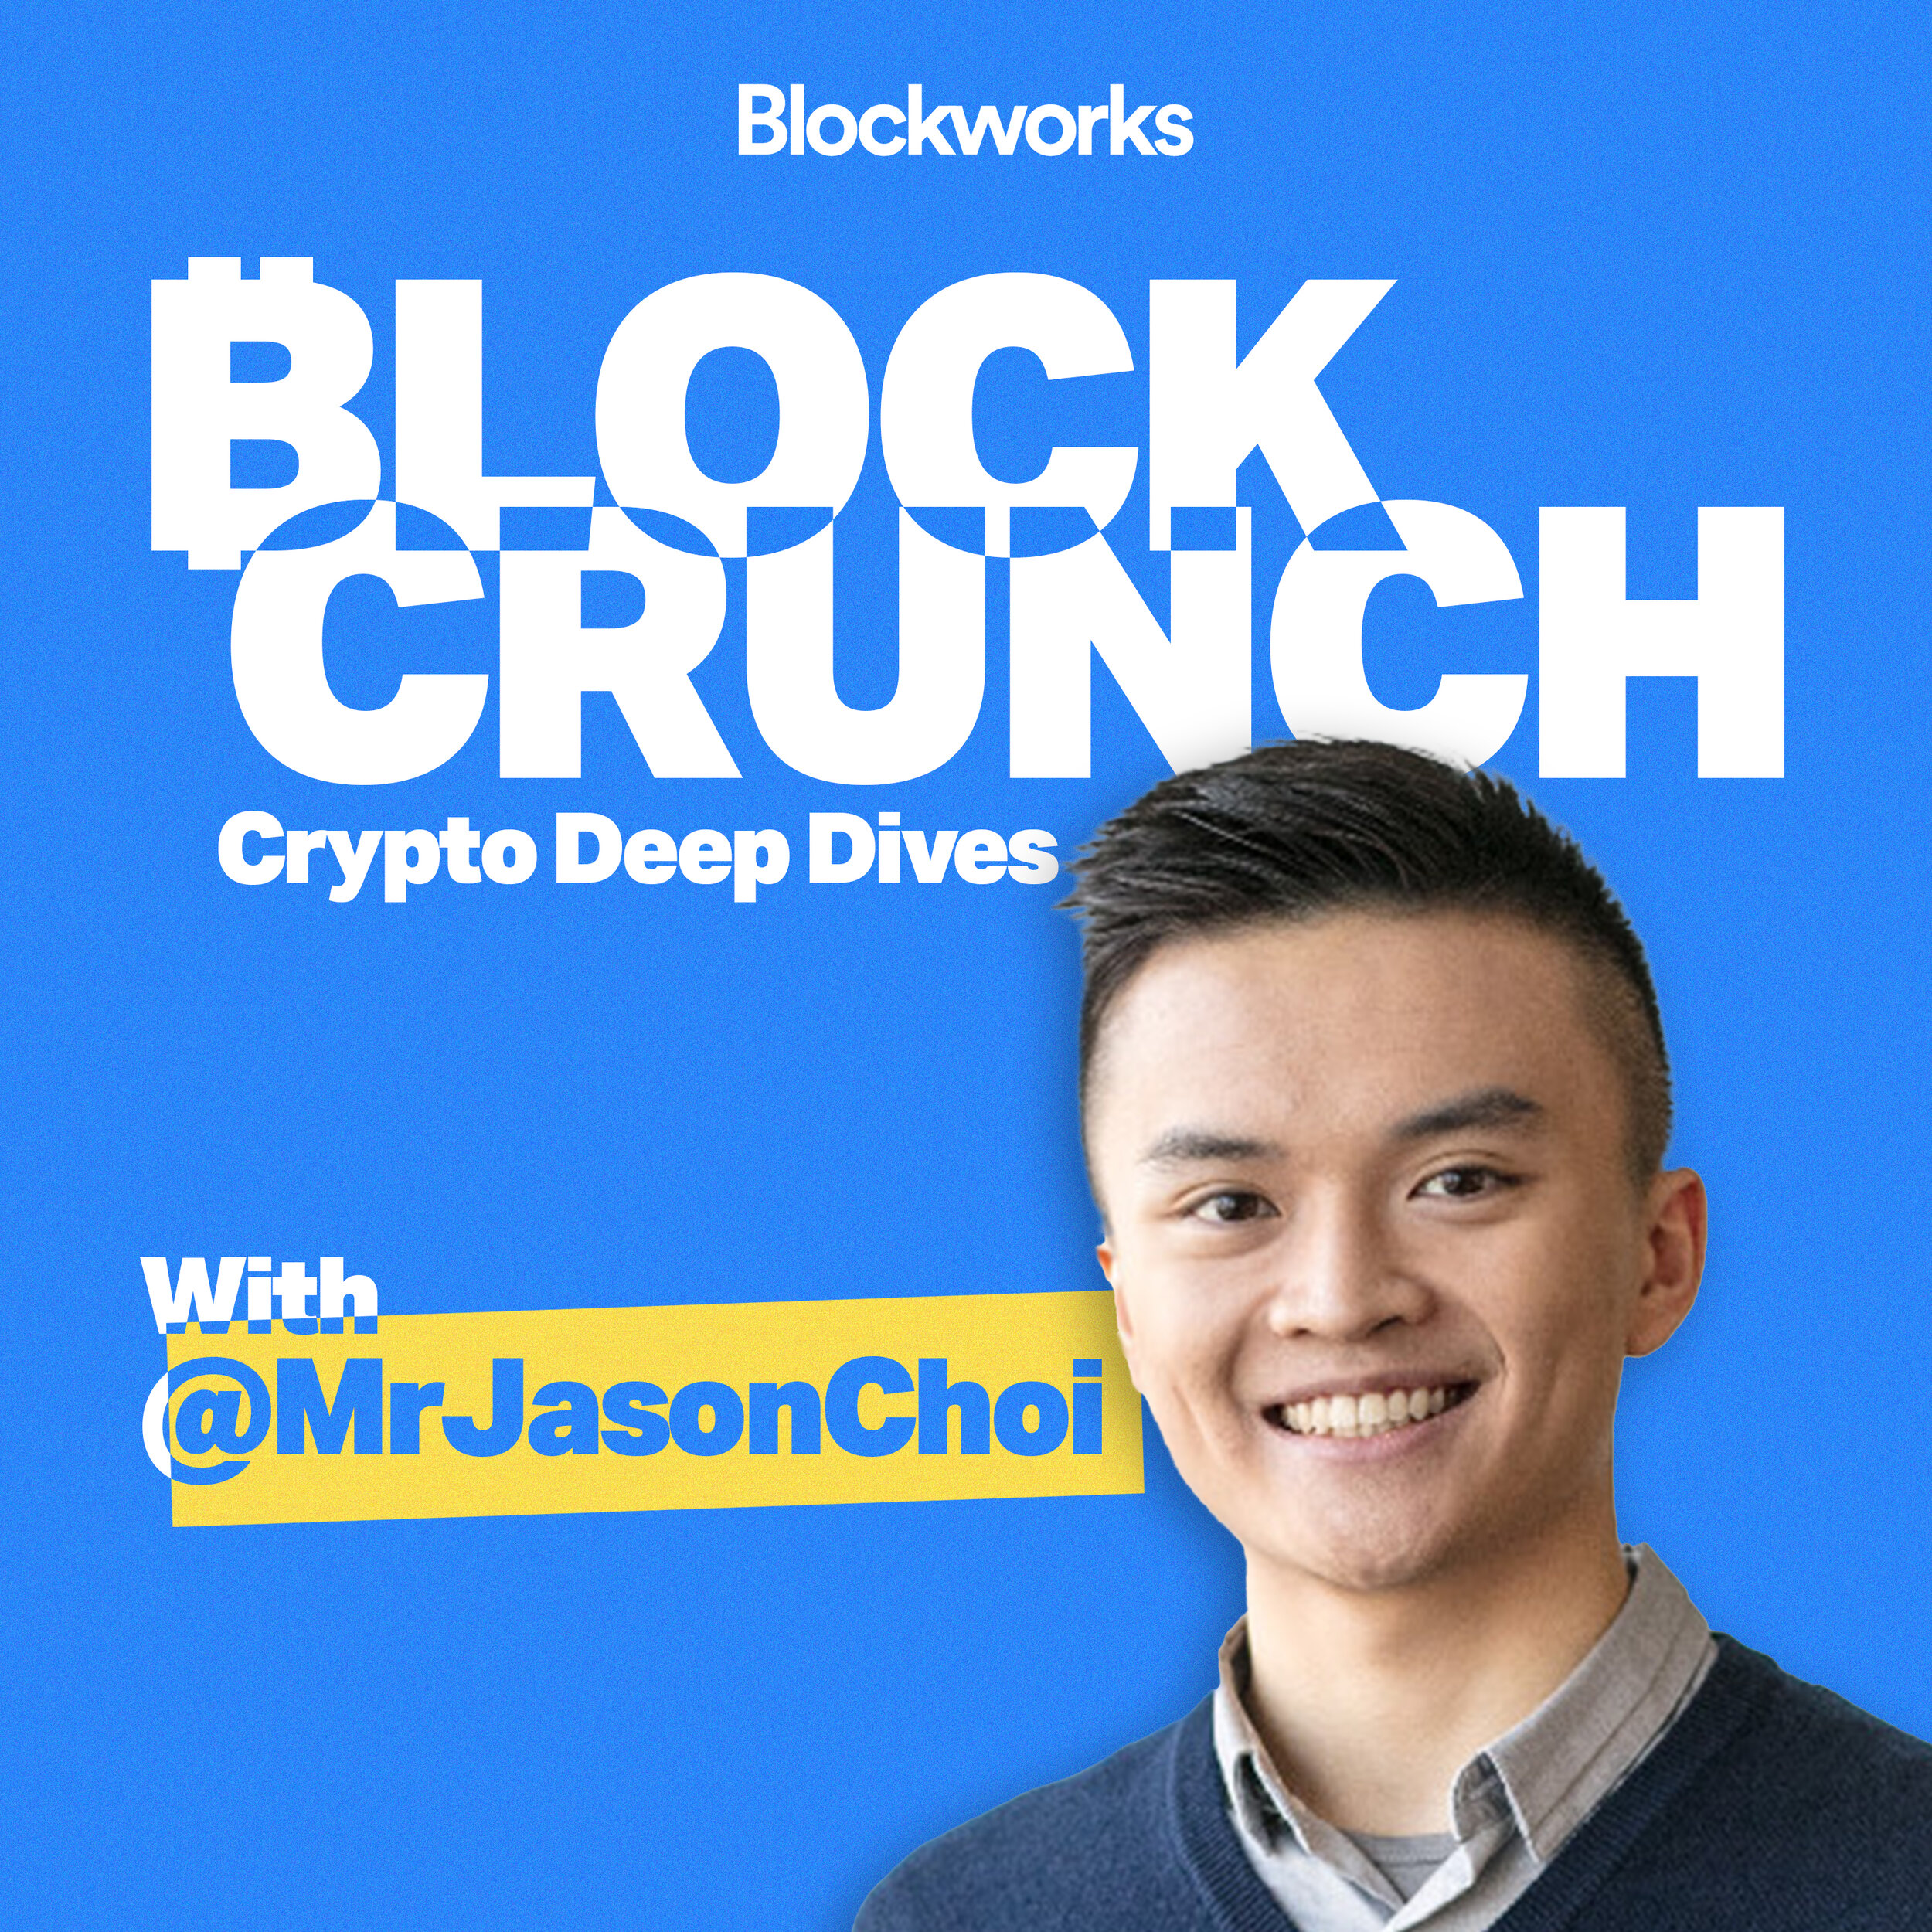 Blockcrunch_Cover_20201023b.jpg